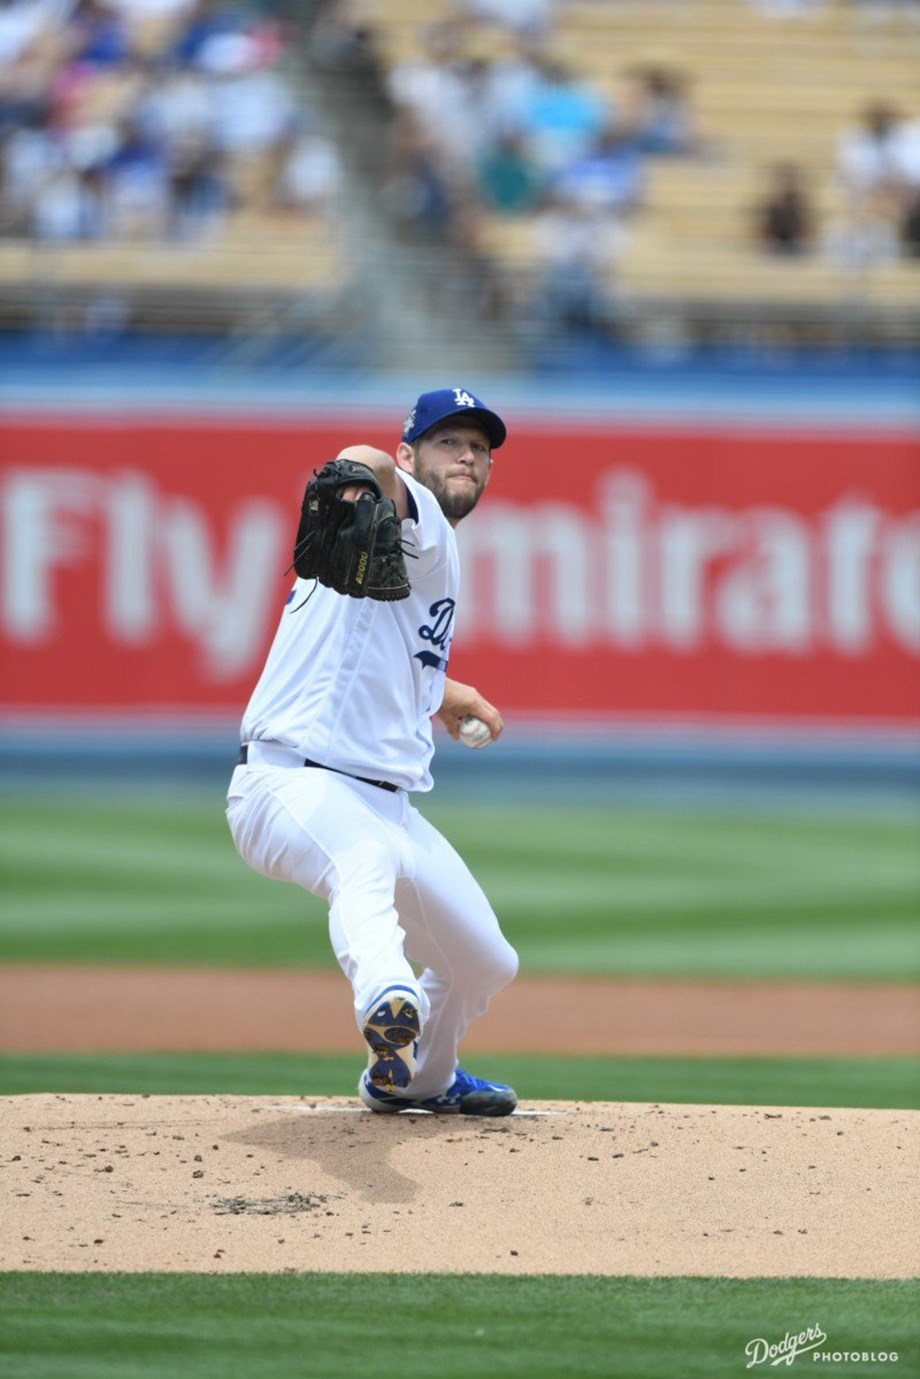 Los Angeles's Kershaw drove in pair of runs to help Dodgers beat Braves 4-1